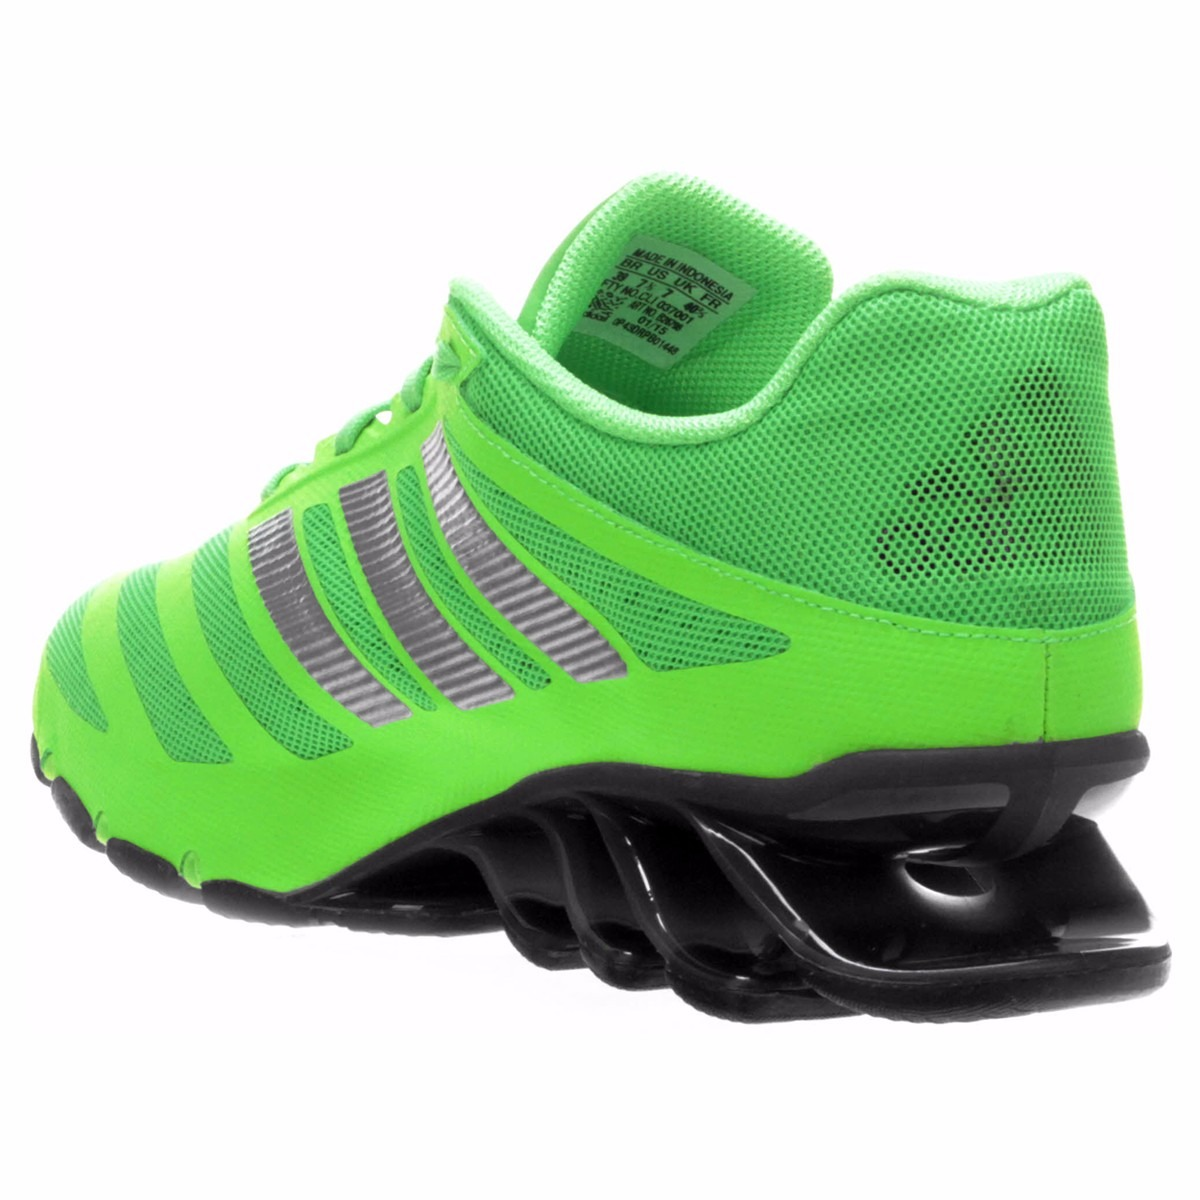 wholesale dealer c2b73 82bb0 adidas springblade ignite white green